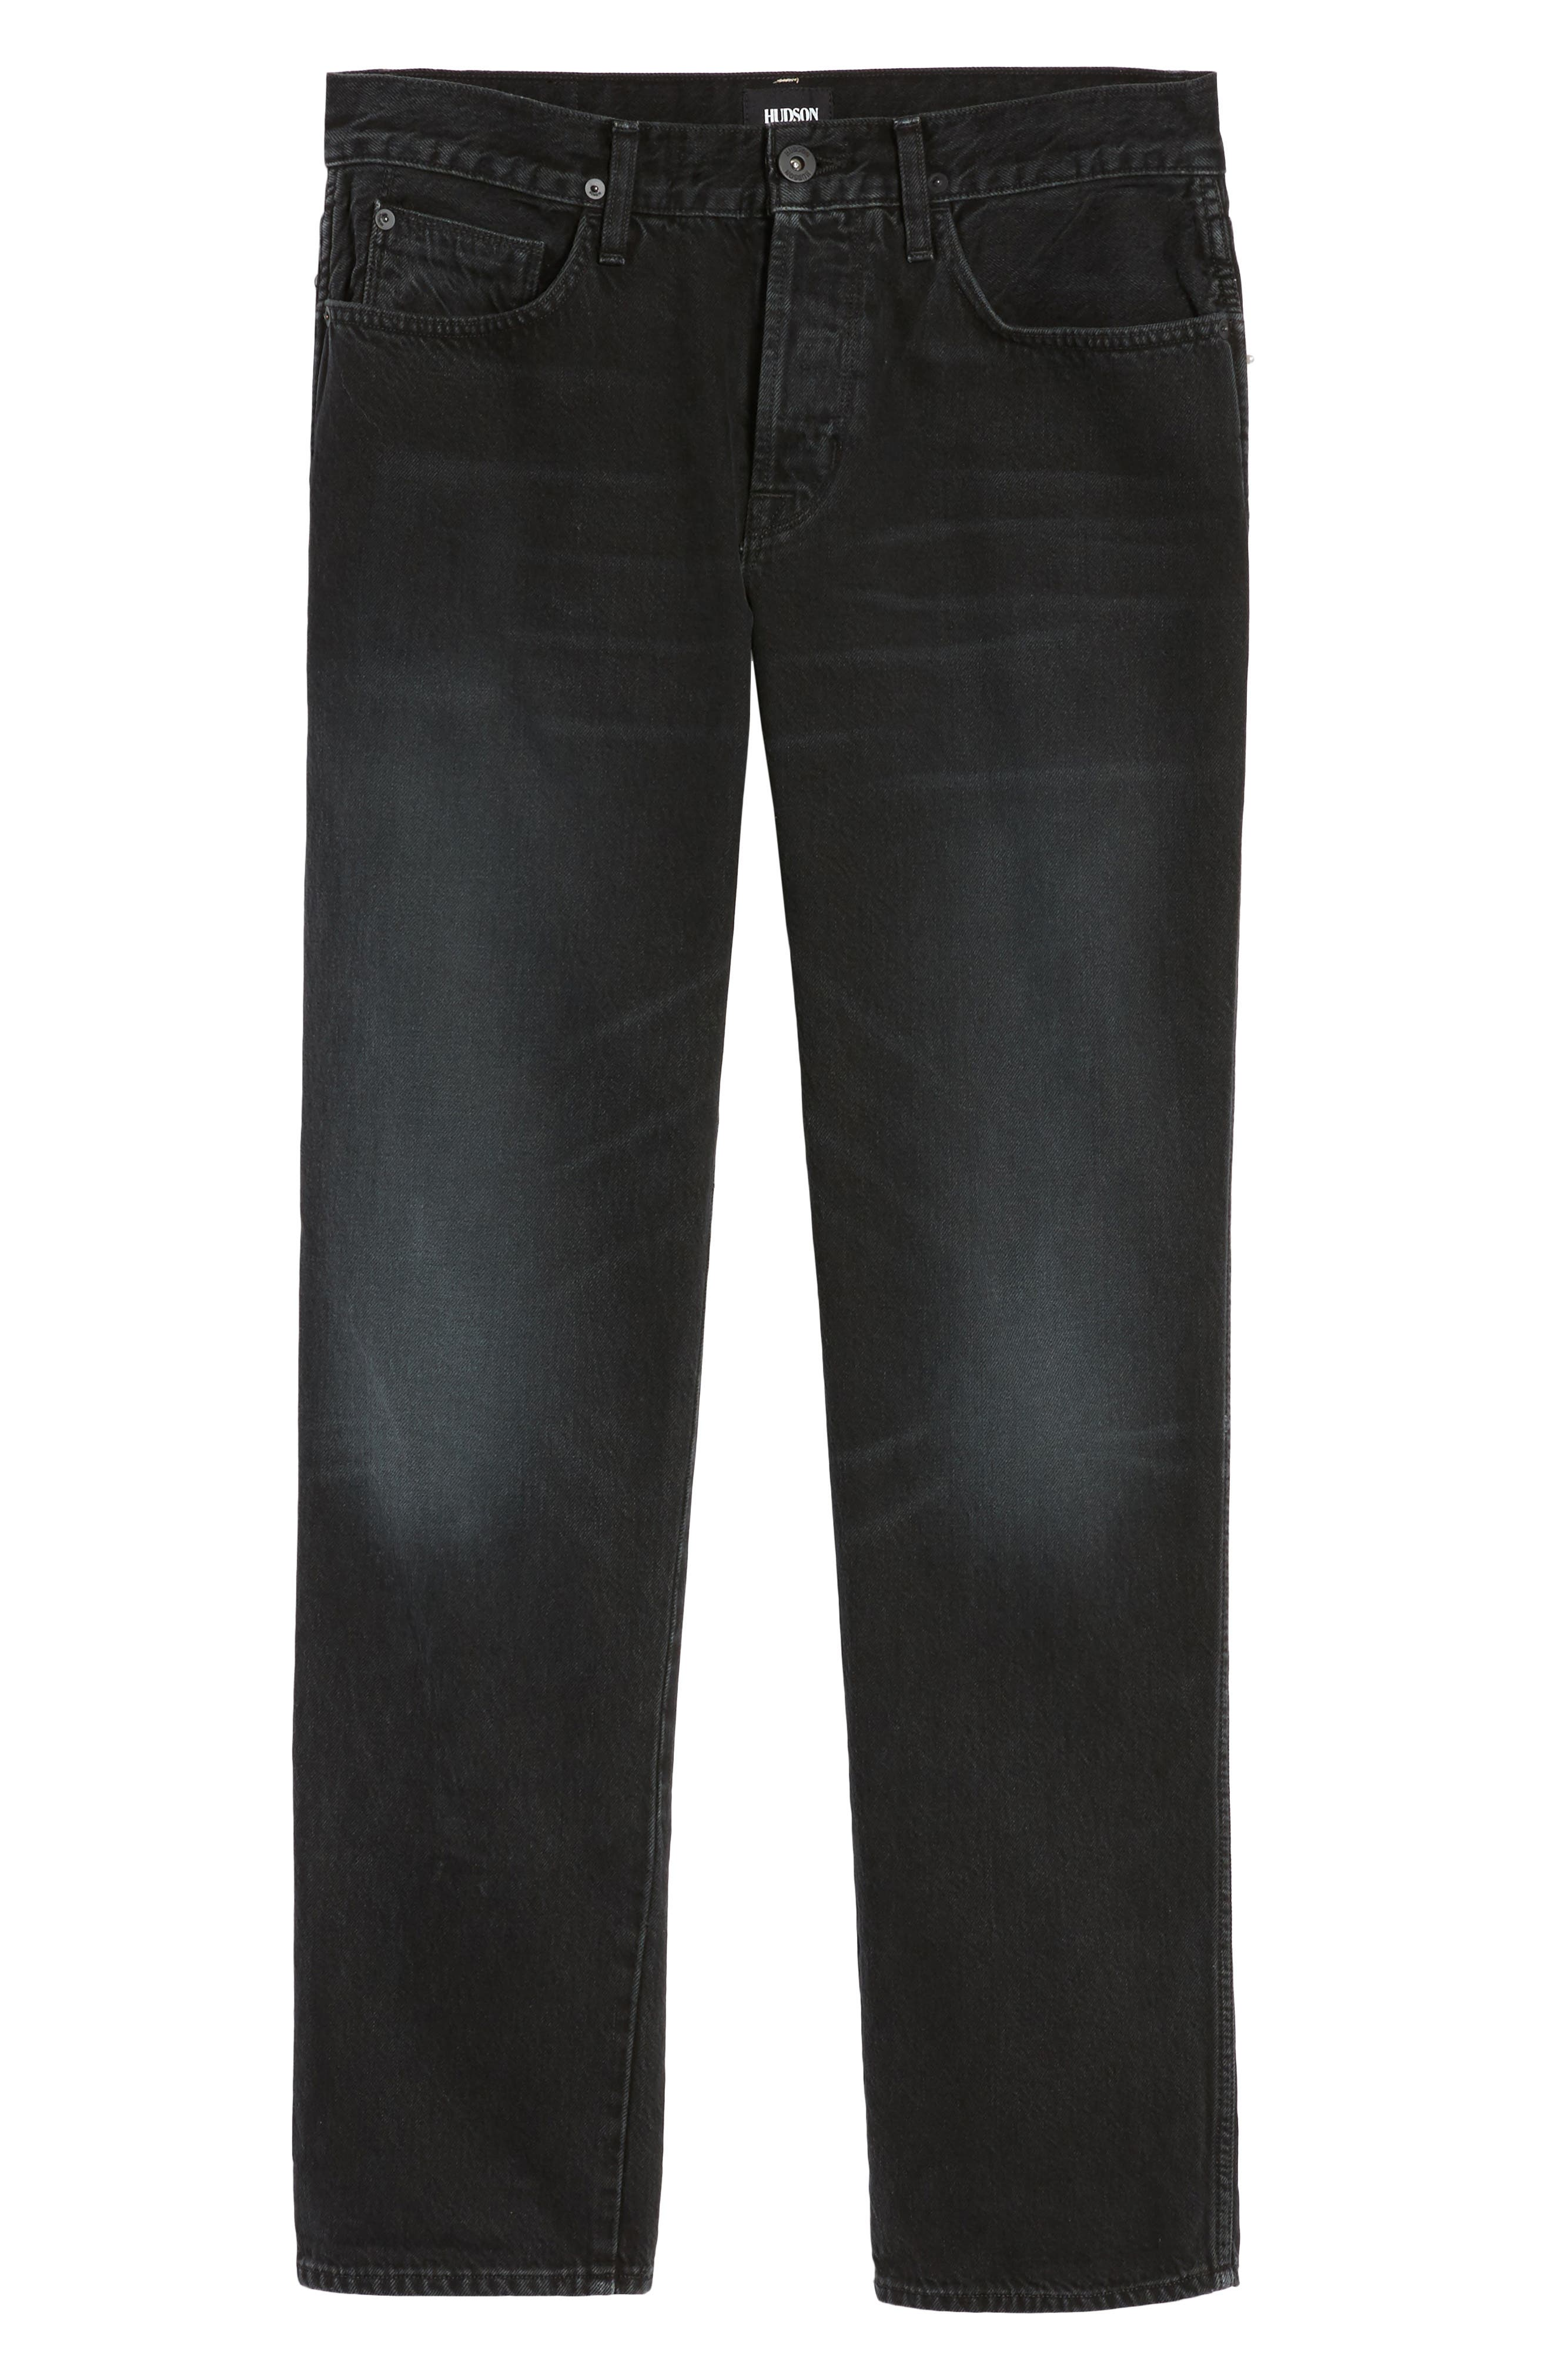 Dixon Straight Fit Jeans,                             Alternate thumbnail 6, color,                             Mean Street